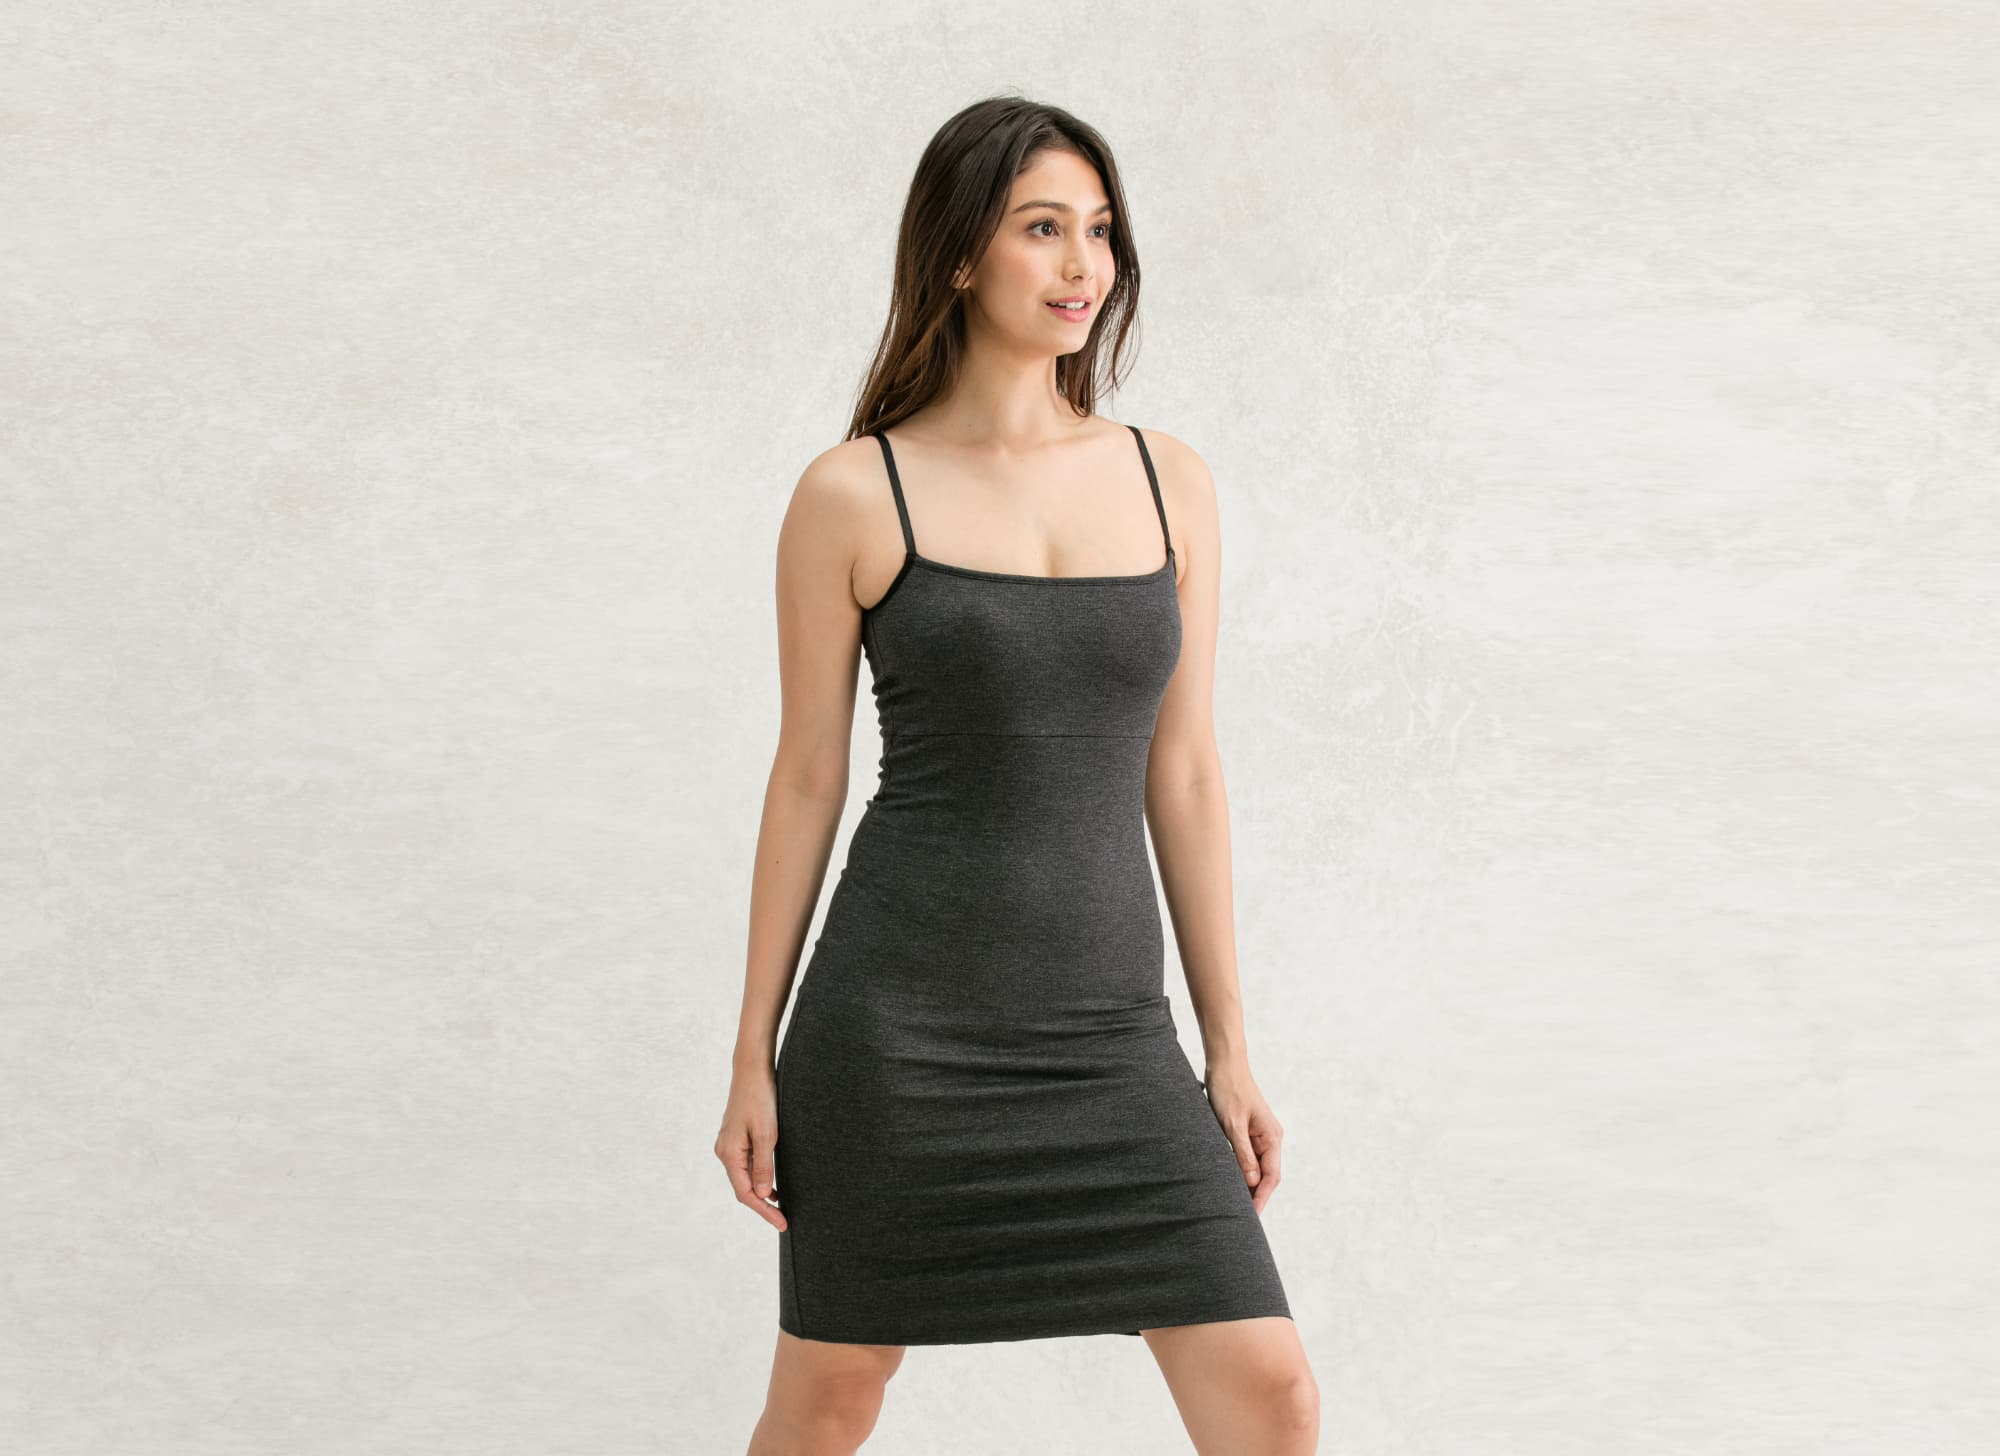 01_Charcoal_Gray_Body_Contour_Underdress.jpg